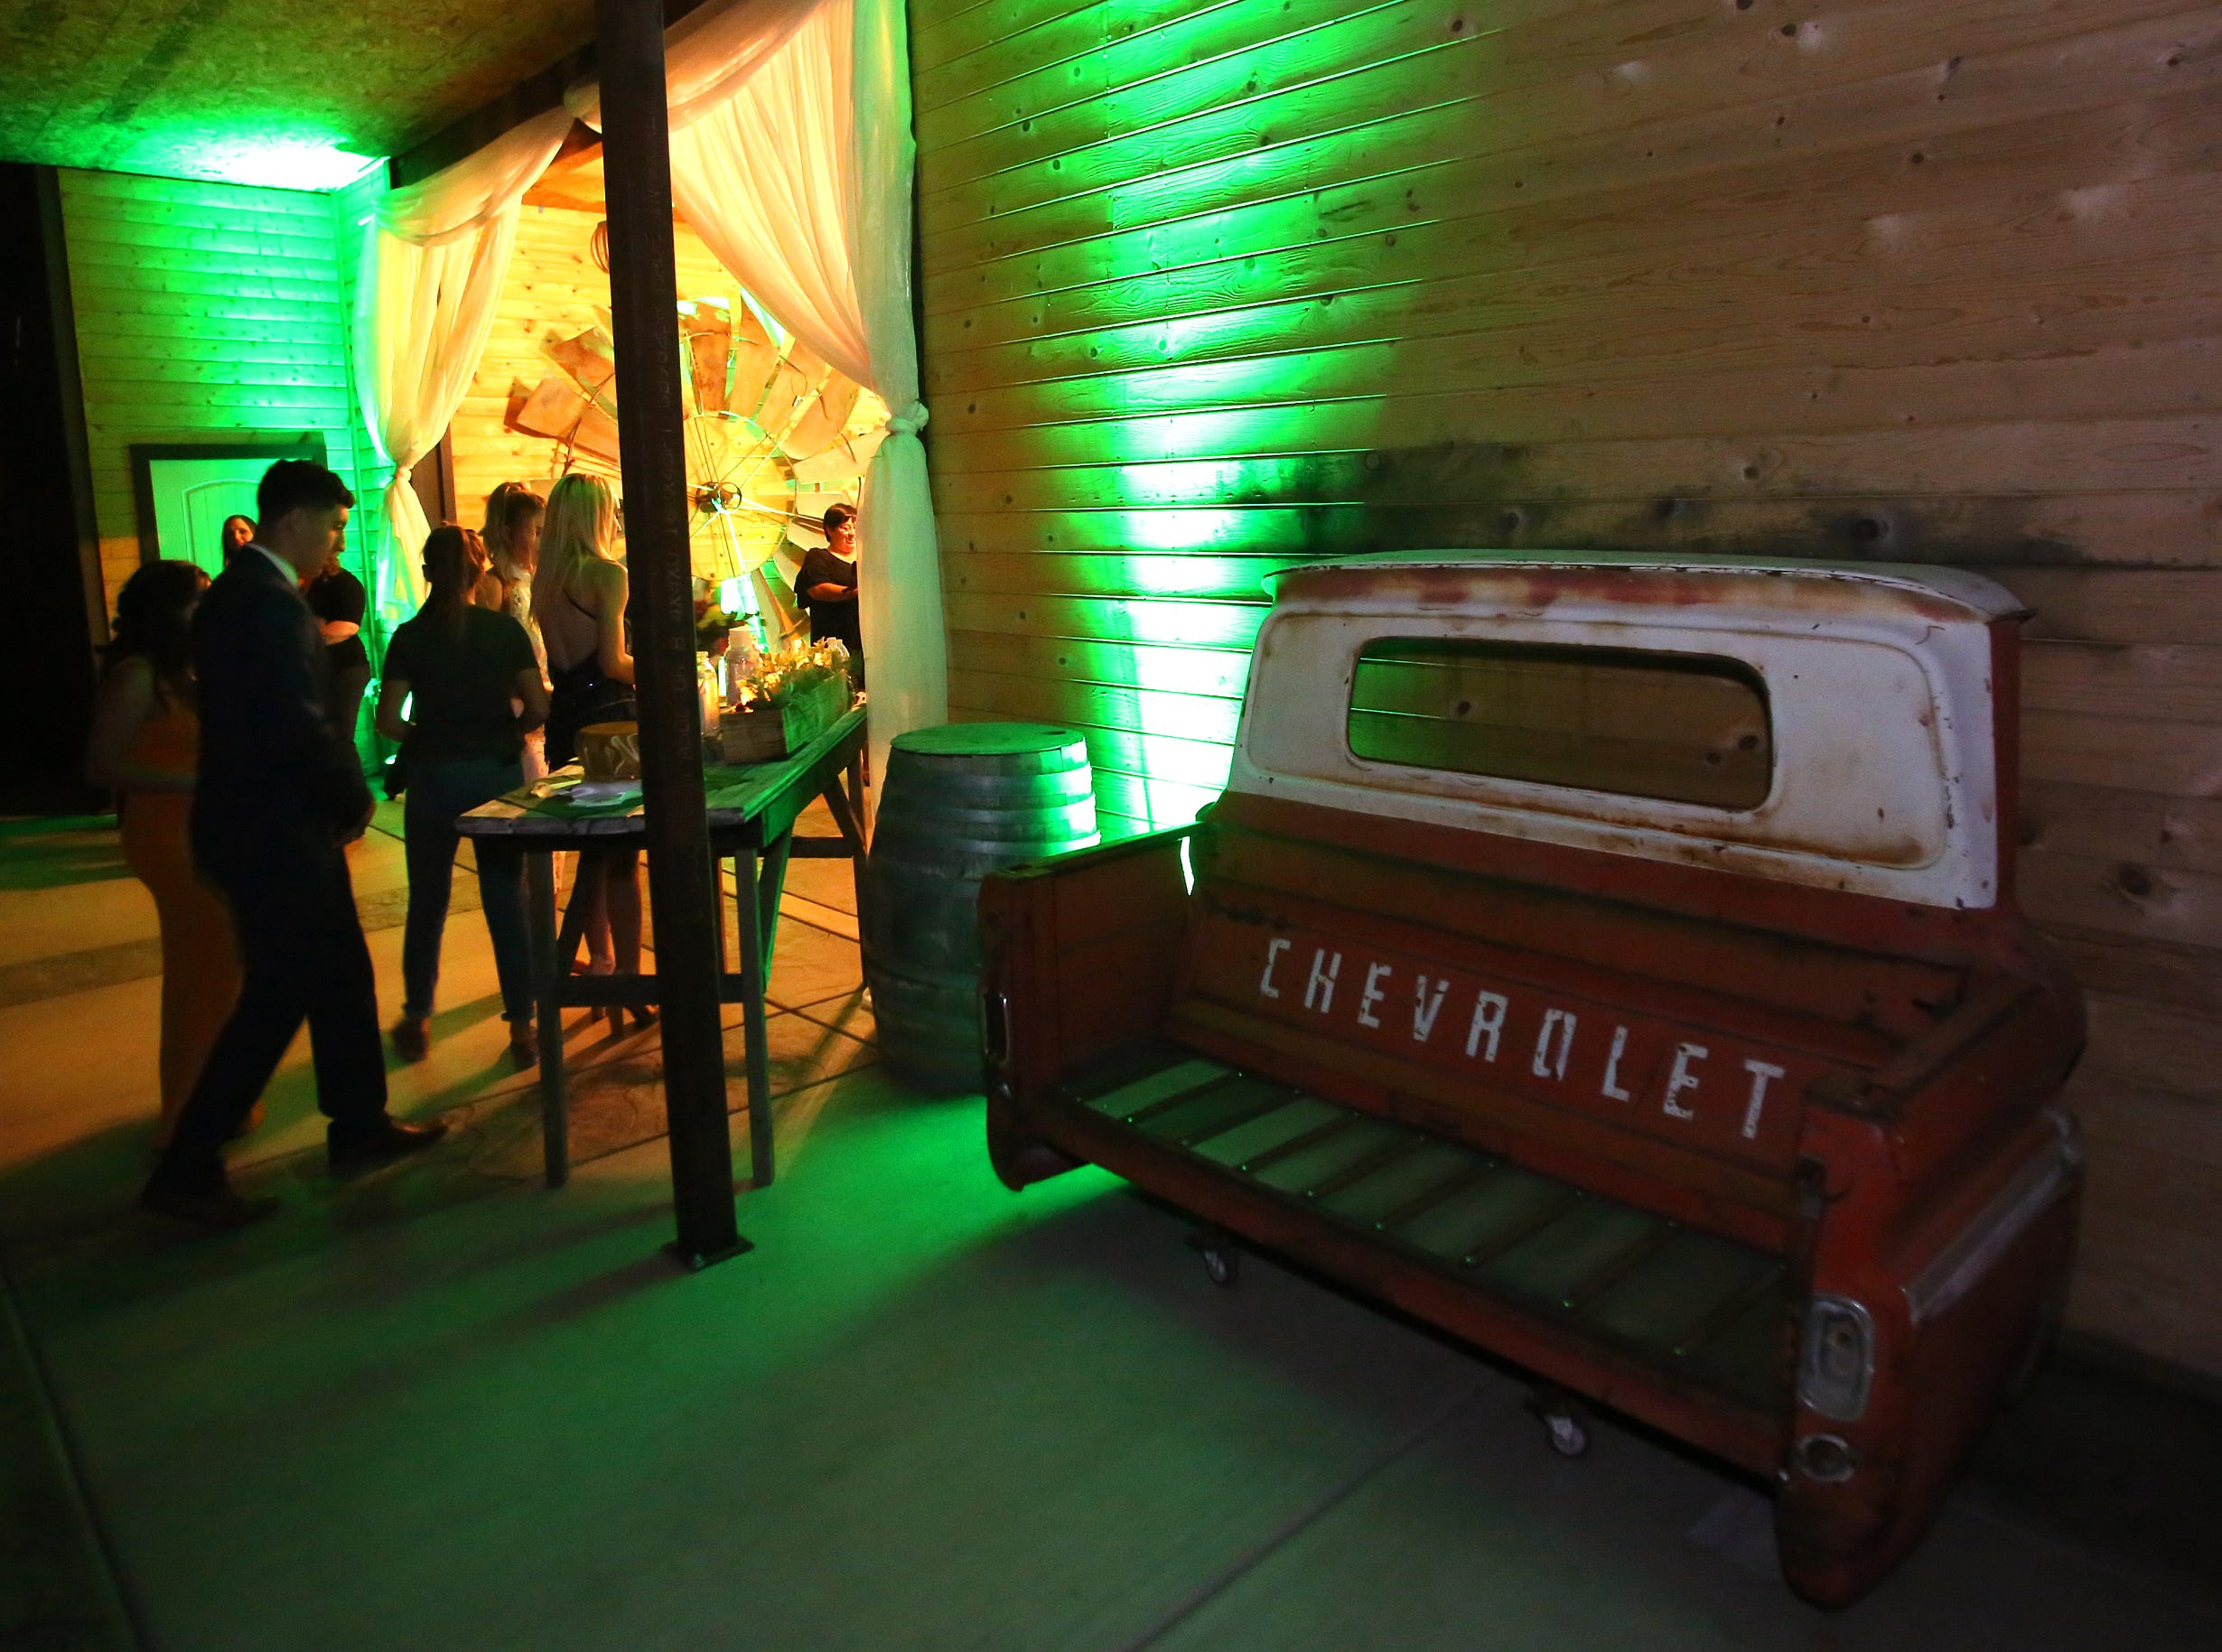 The old Cottonwood Barn was the backdrop at this year's annual Exeter Union High School prom Saturday, May 4, 2019 in Woodlake, Calif.